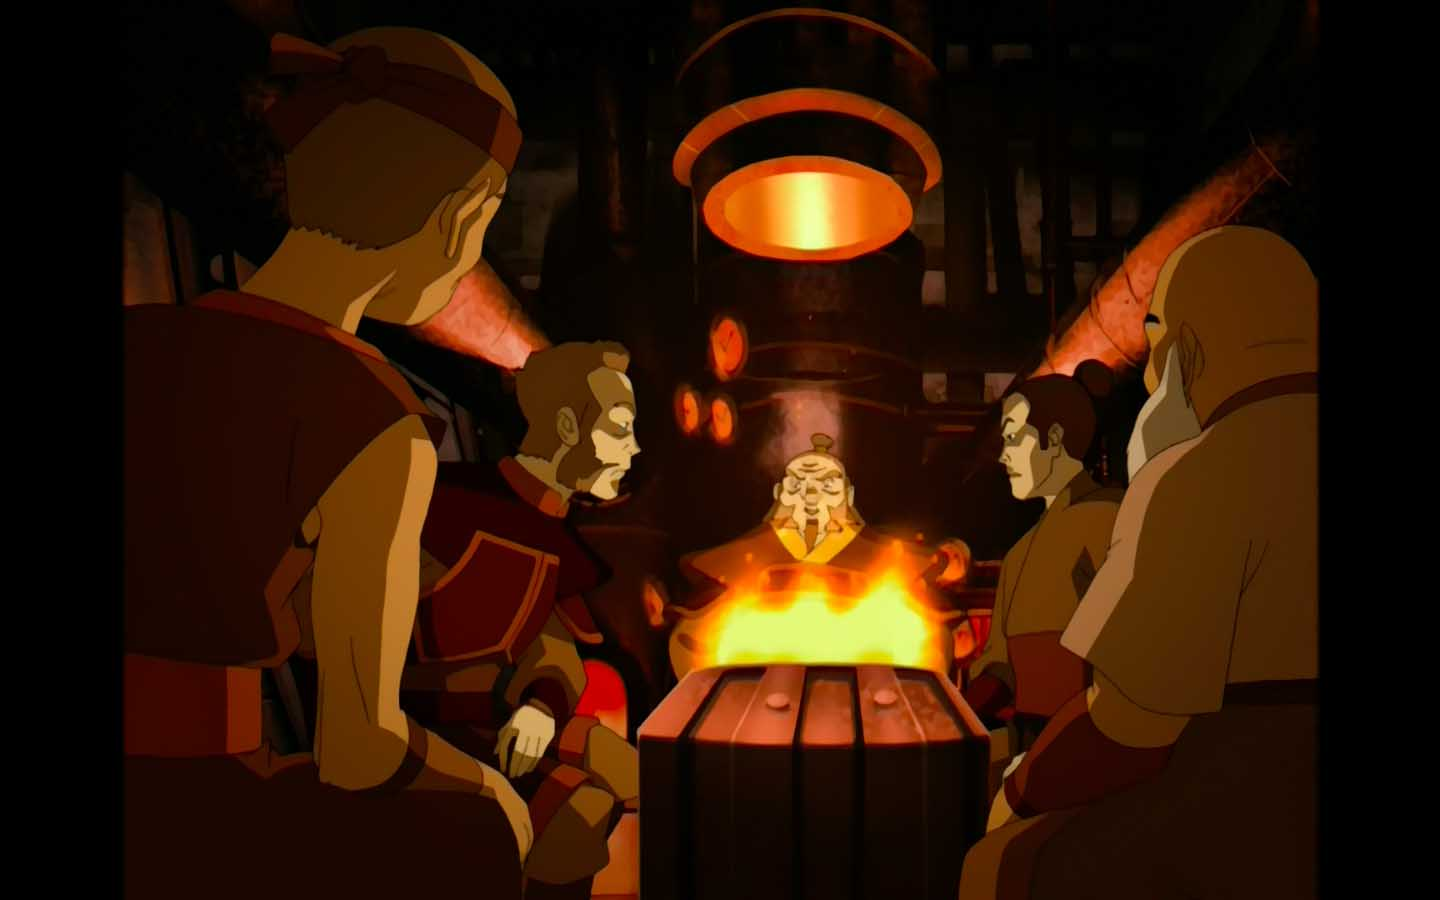 Many Gen Zers remember the iconic Nick series 'Avatar: The Last Airbender'. Those looking for a kick of nostalgia can enjoy these iconic moments on Netflix.